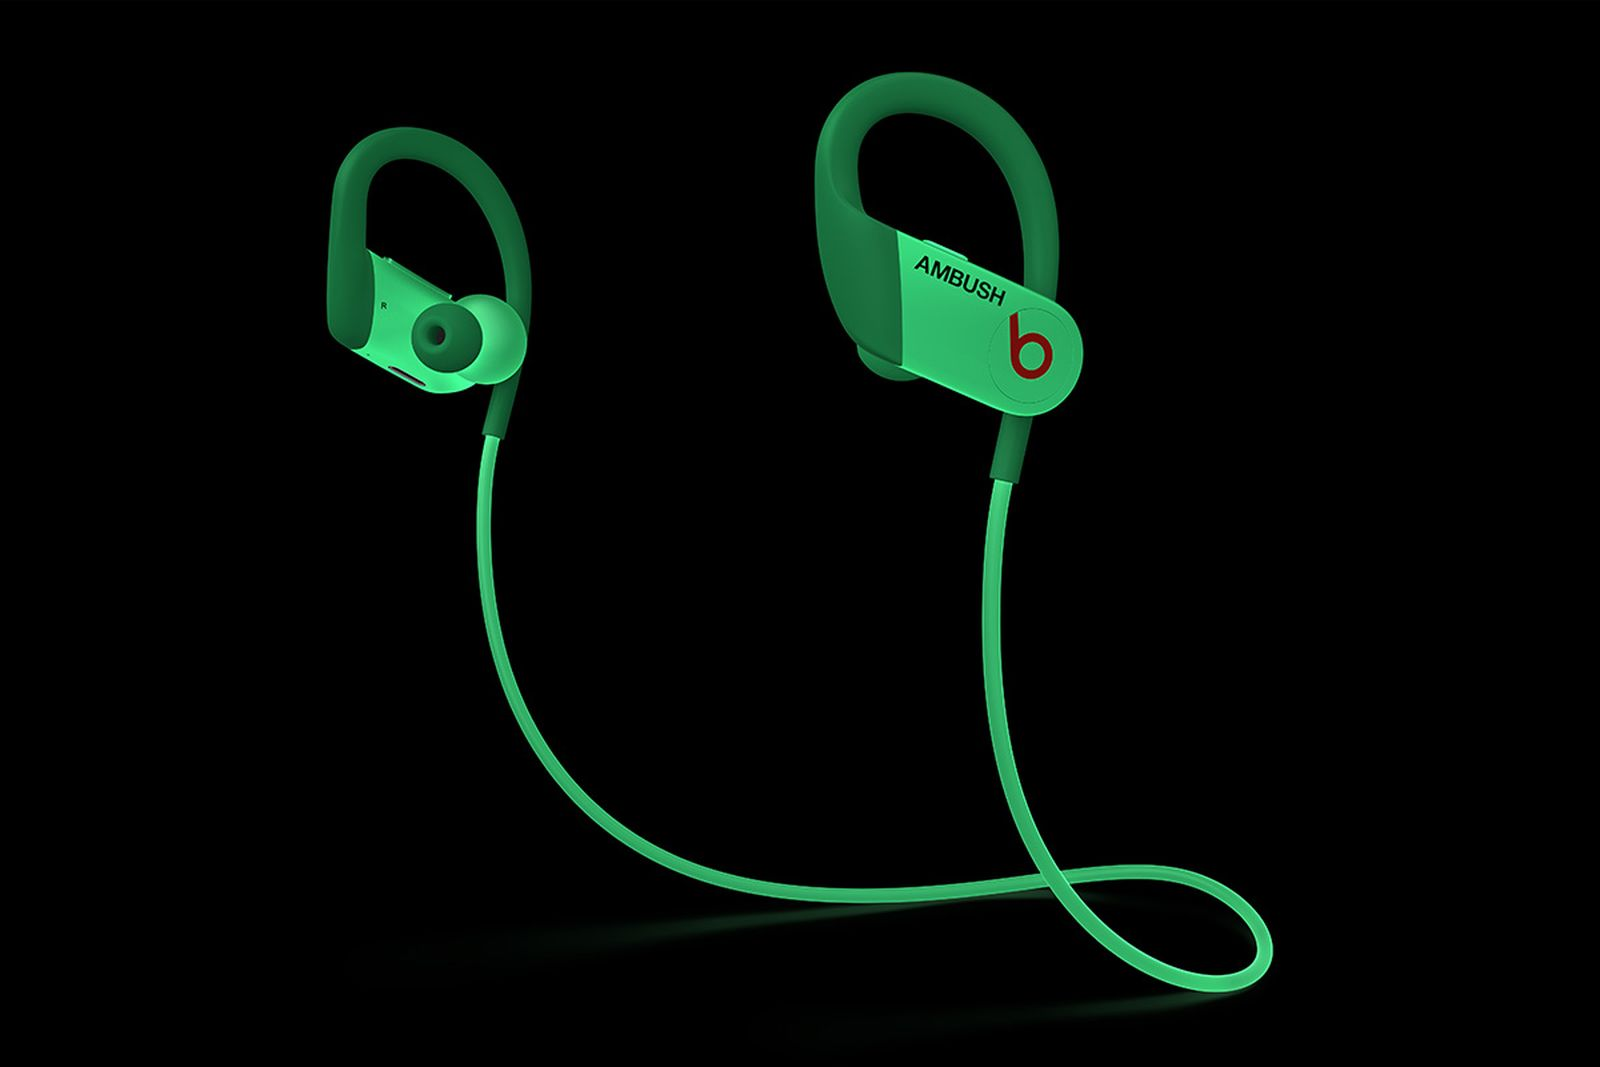 beats-ambush-glow-in-the-dark-powerbeats-05